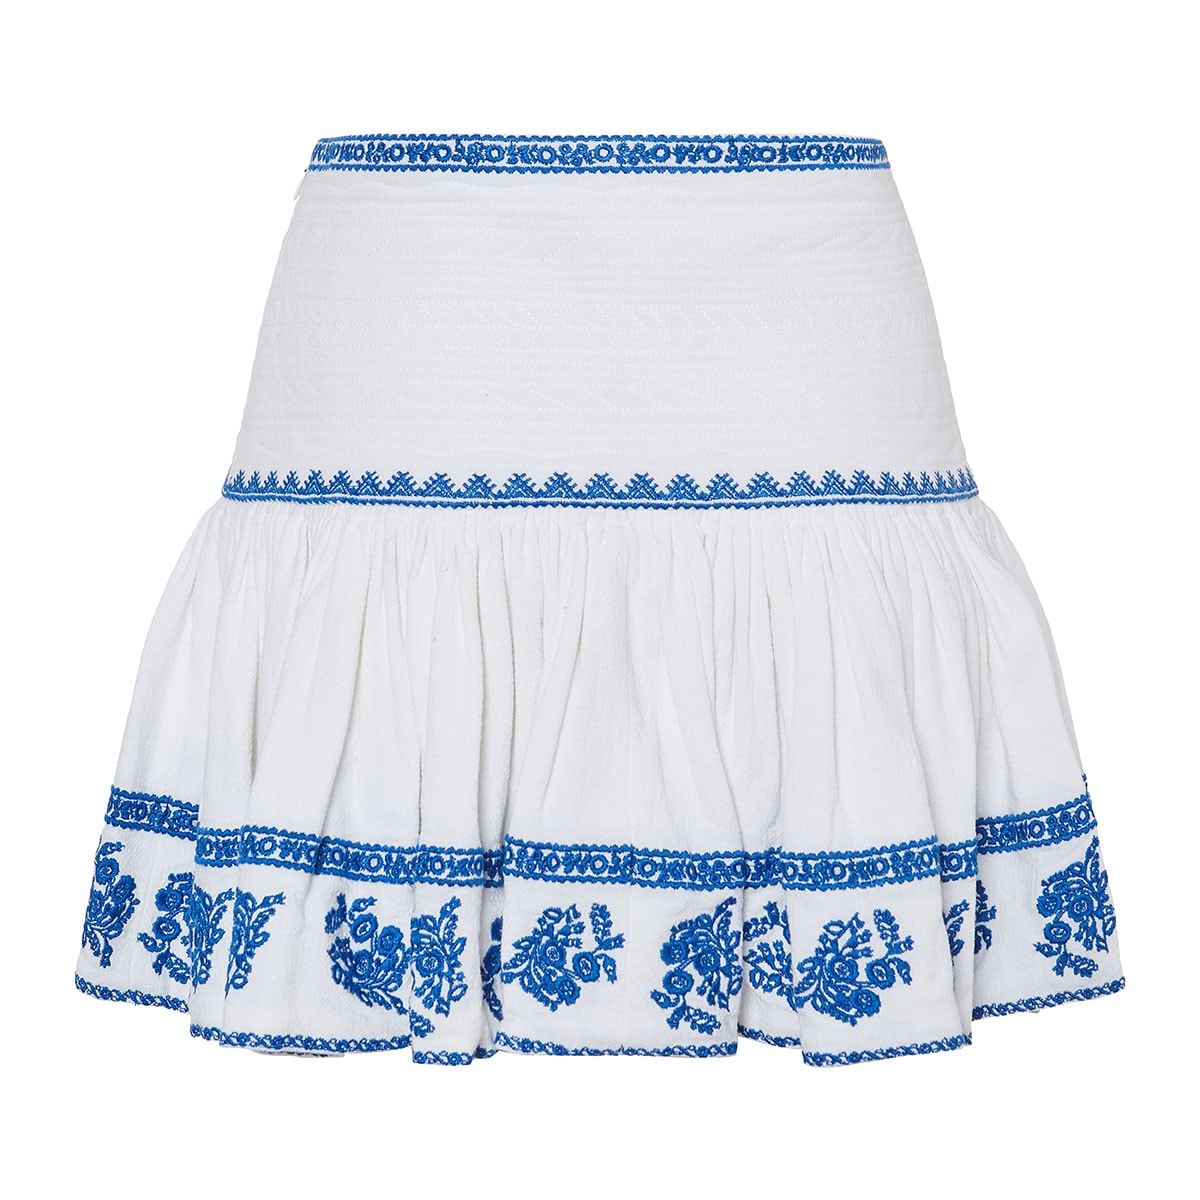 Russel embroidered mini skirt